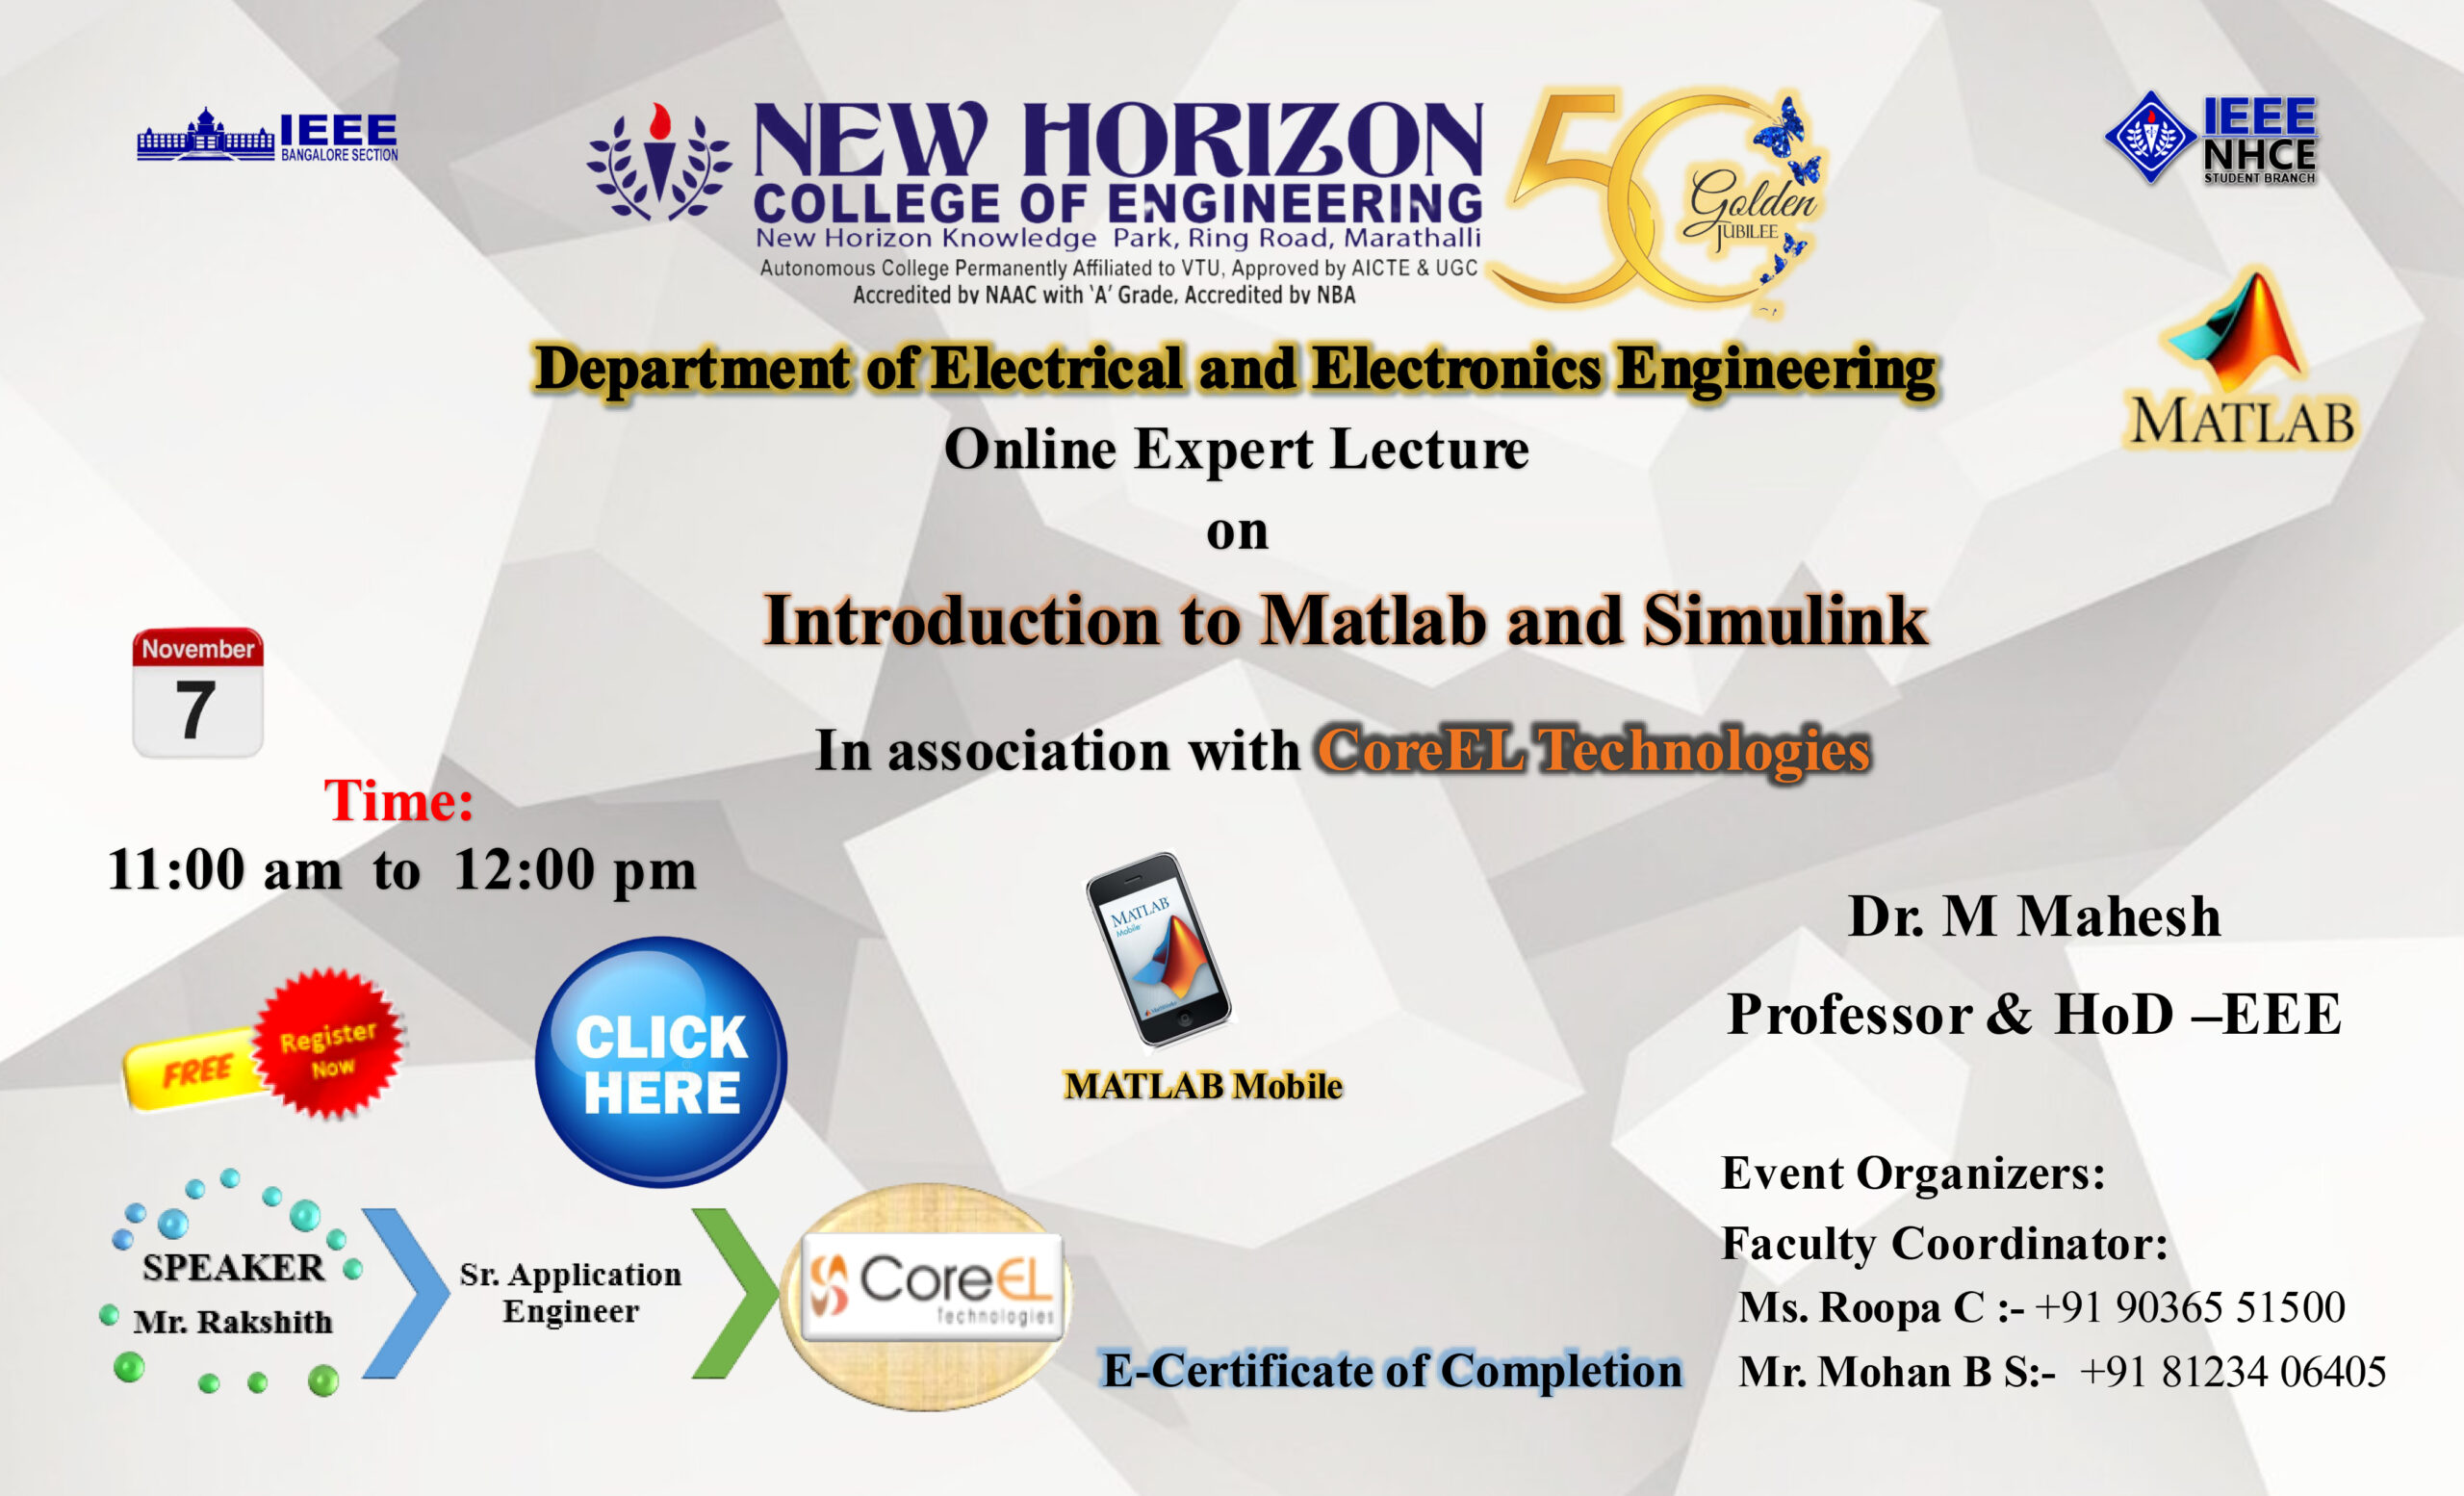 Online Expert Lecture on- Introducion to Matlab and Simulink-7th November 20201